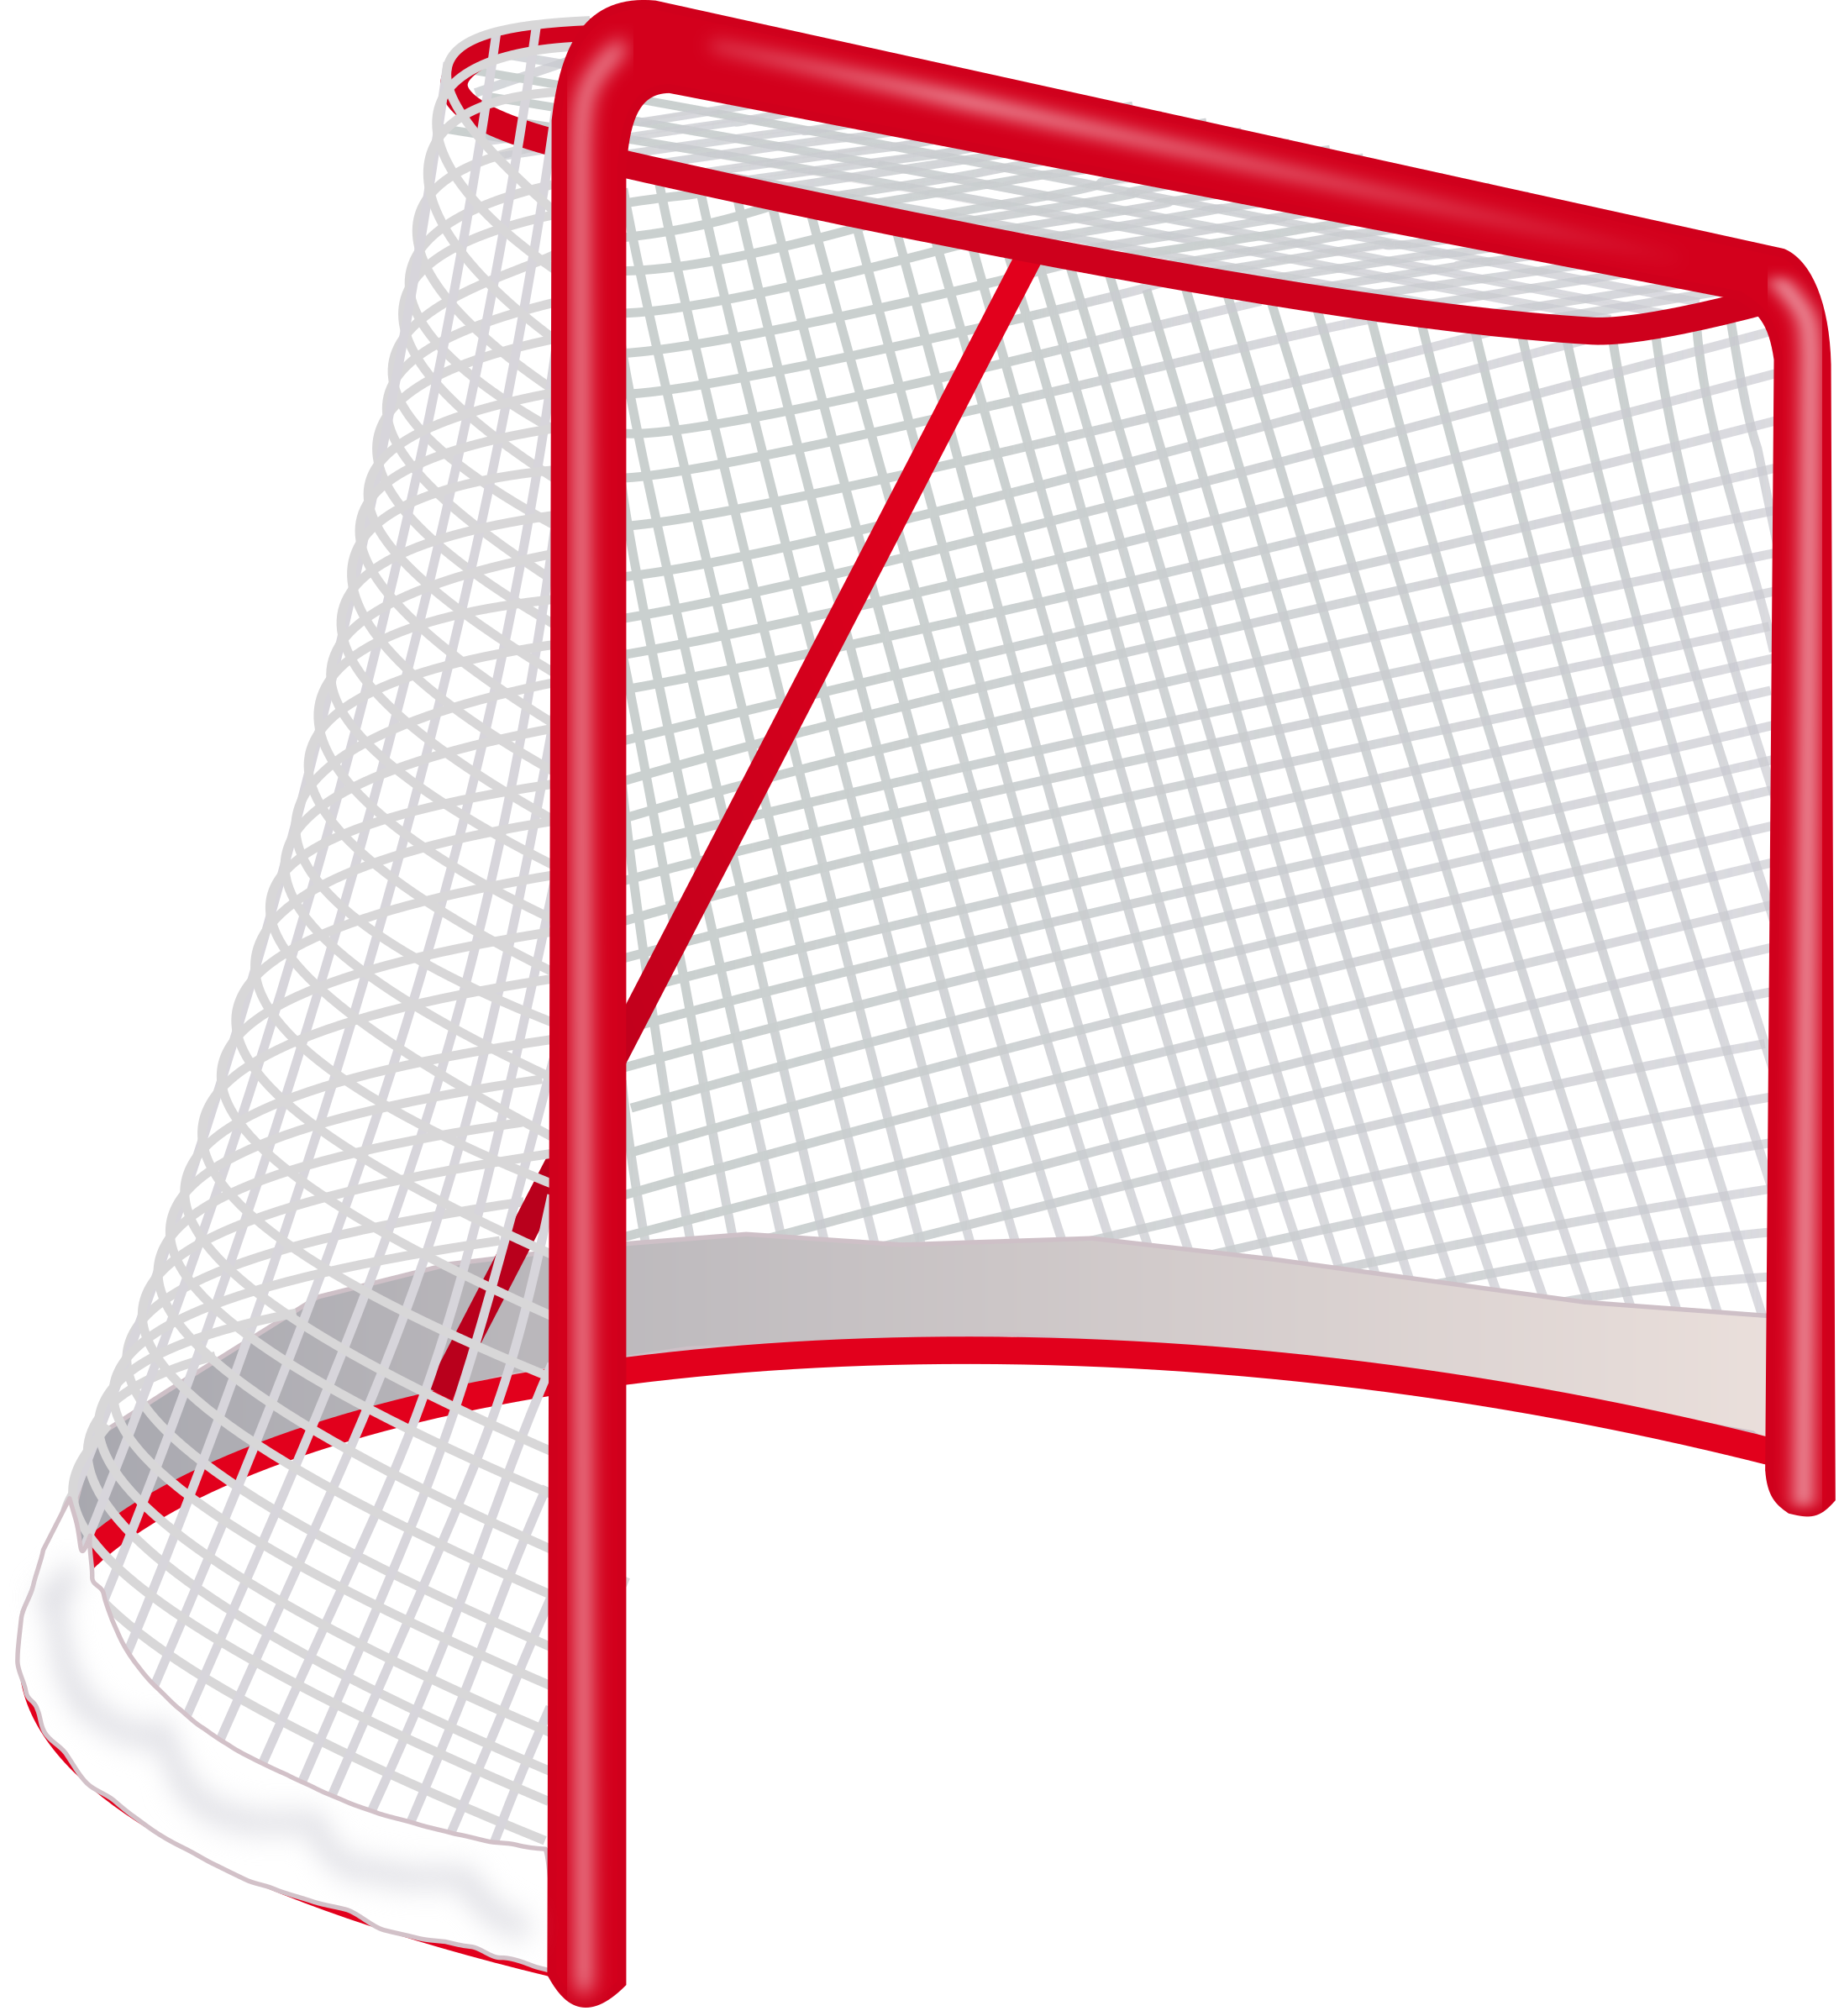 Ripped basketball net clipart image freeuse download Clipart - Hockey Goal image freeuse download